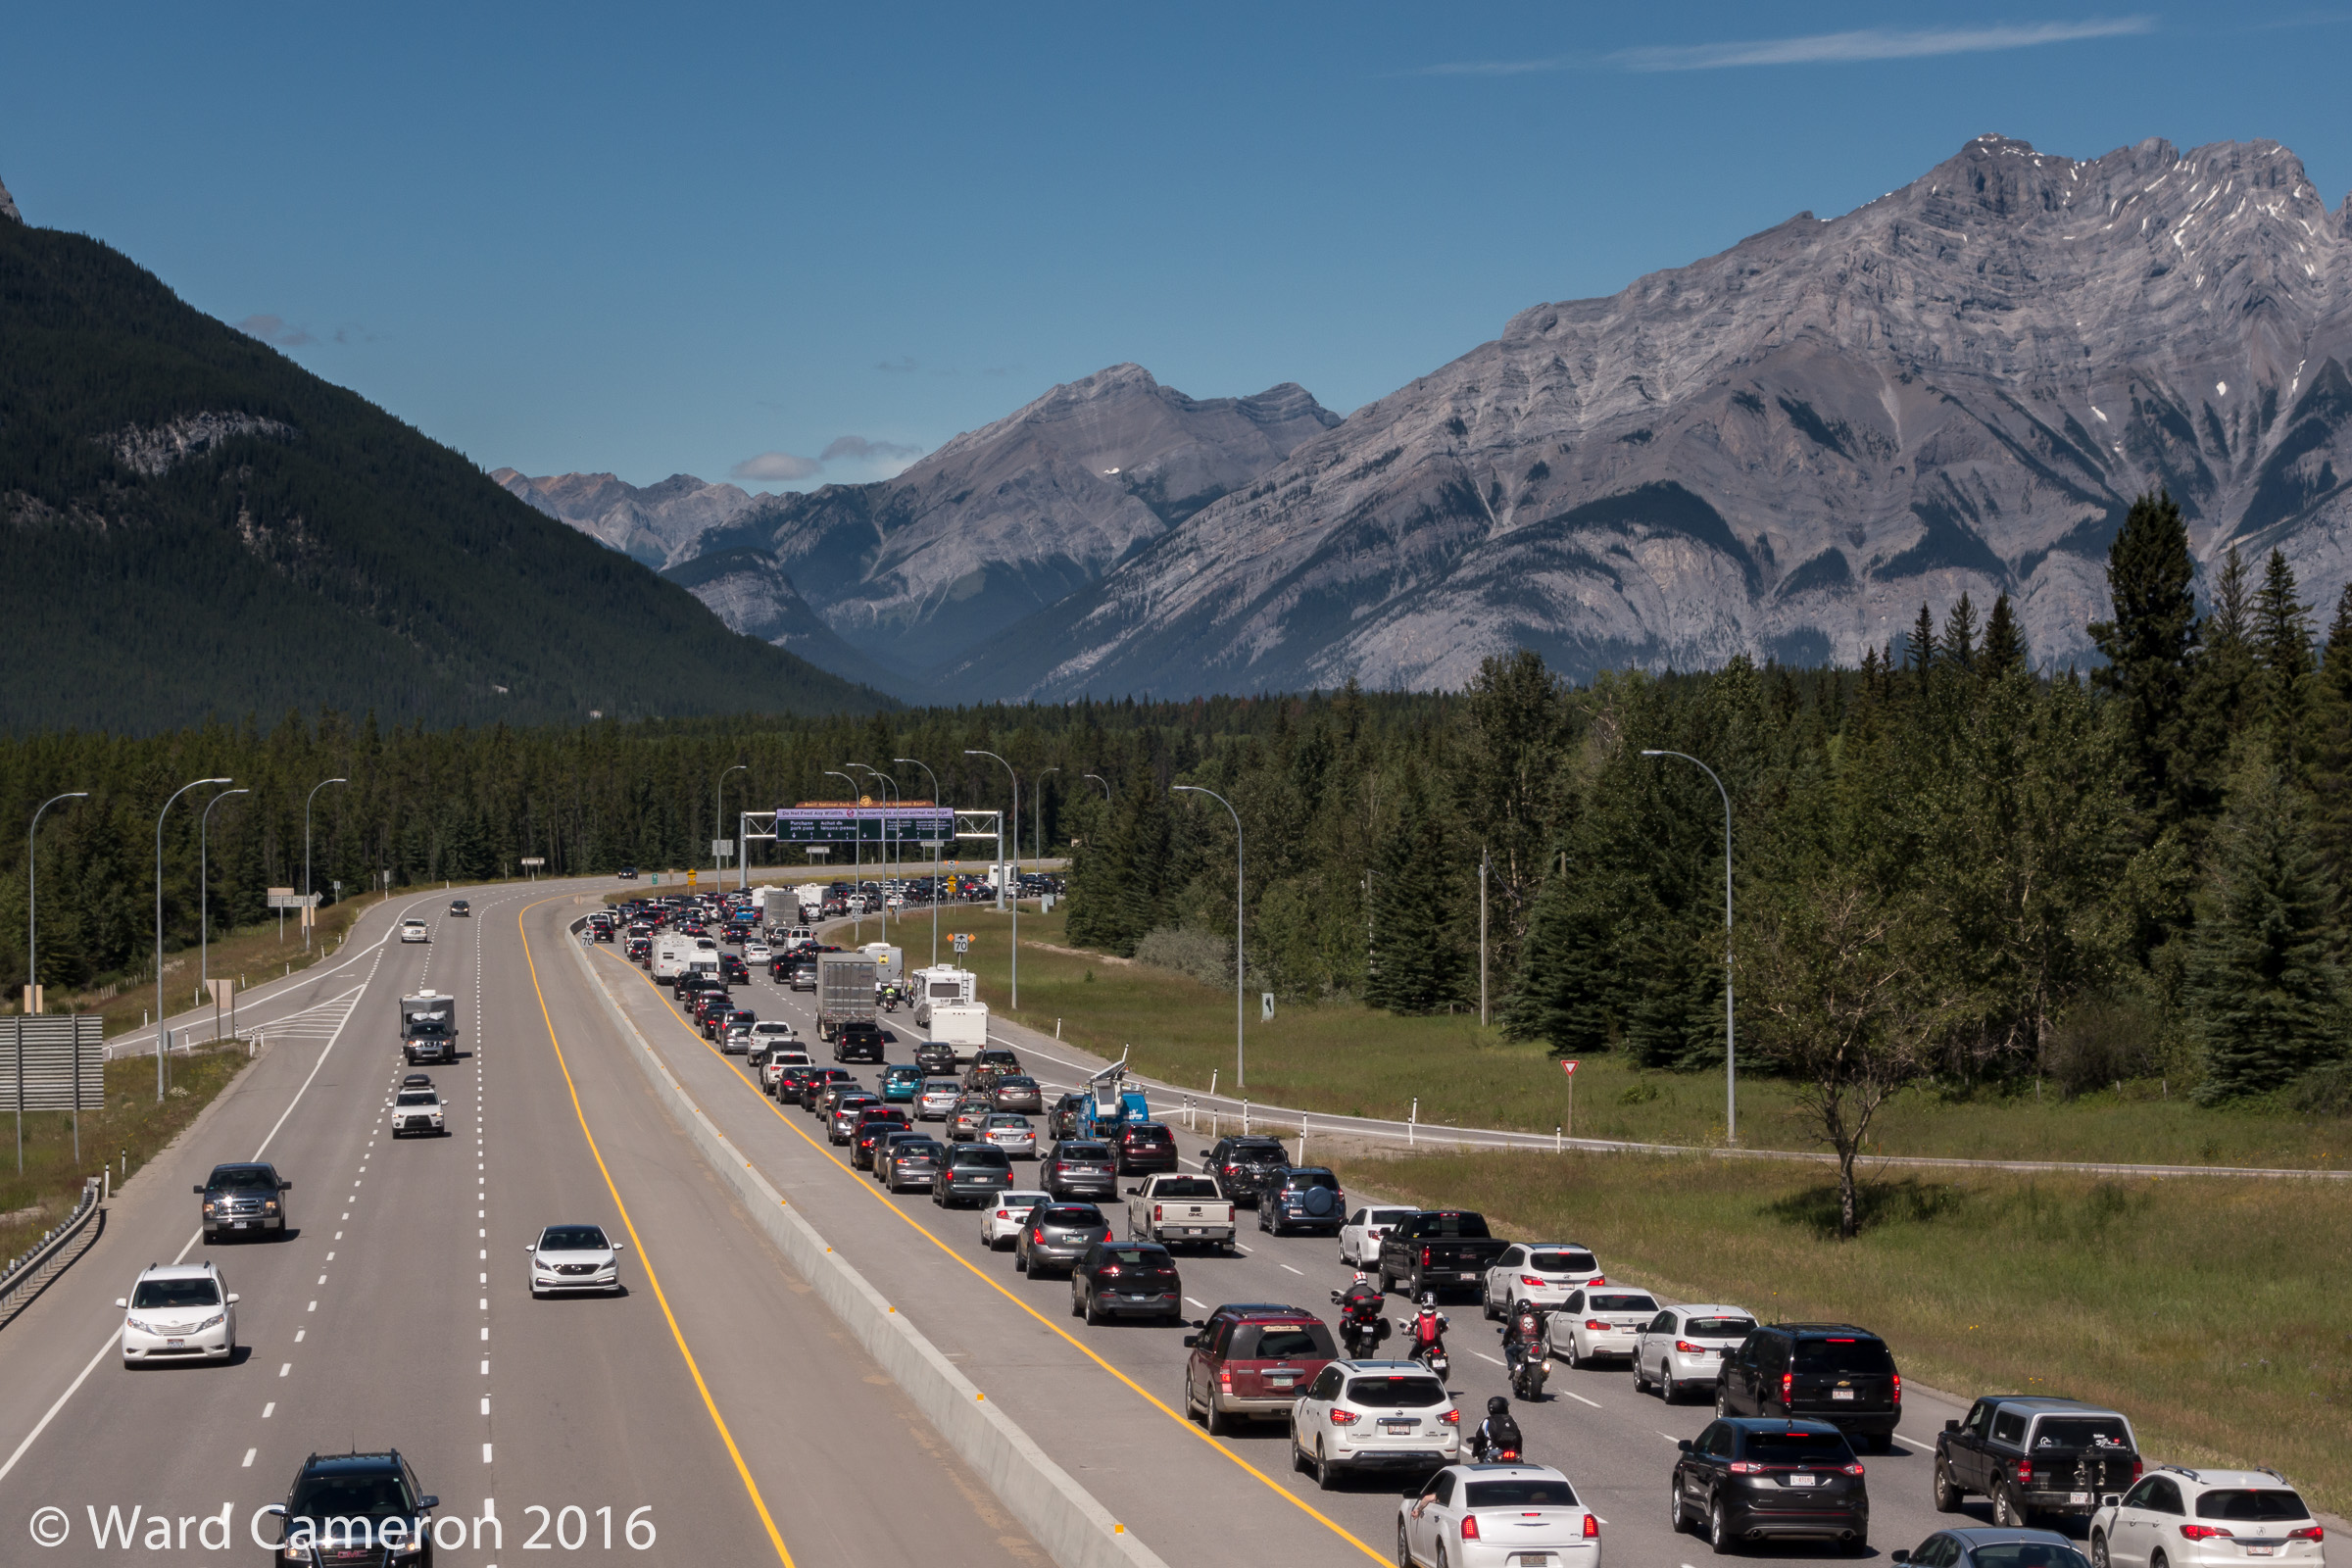 Long lineups of cars waiting to enter Banff National Park